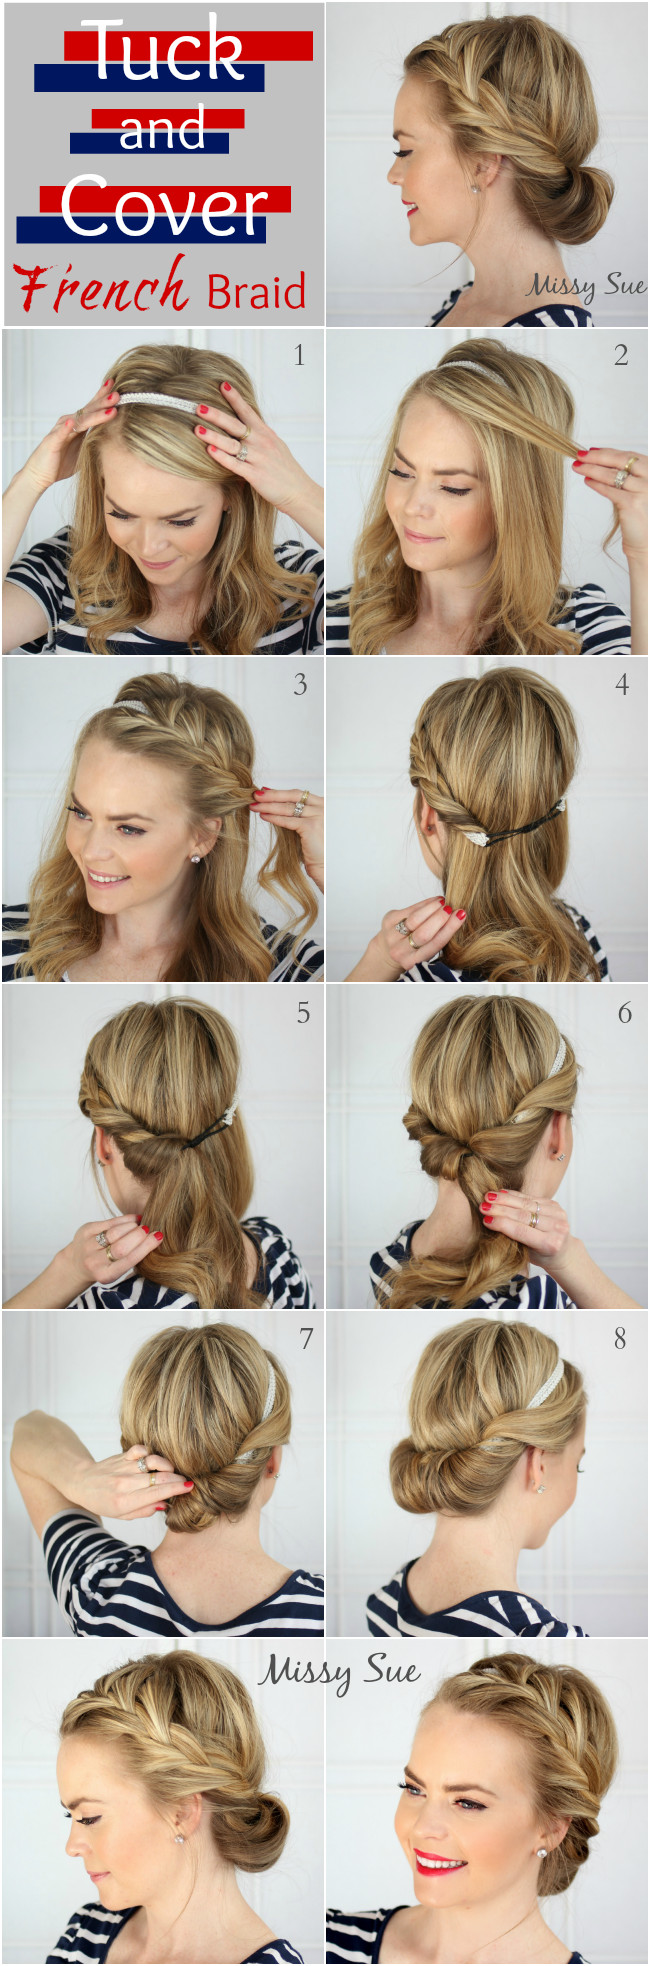 Best ideas about DIY Haircuts For Short Hair . Save or Pin 10 Best DIY Wedding Hairstyles with Tutorials Now.